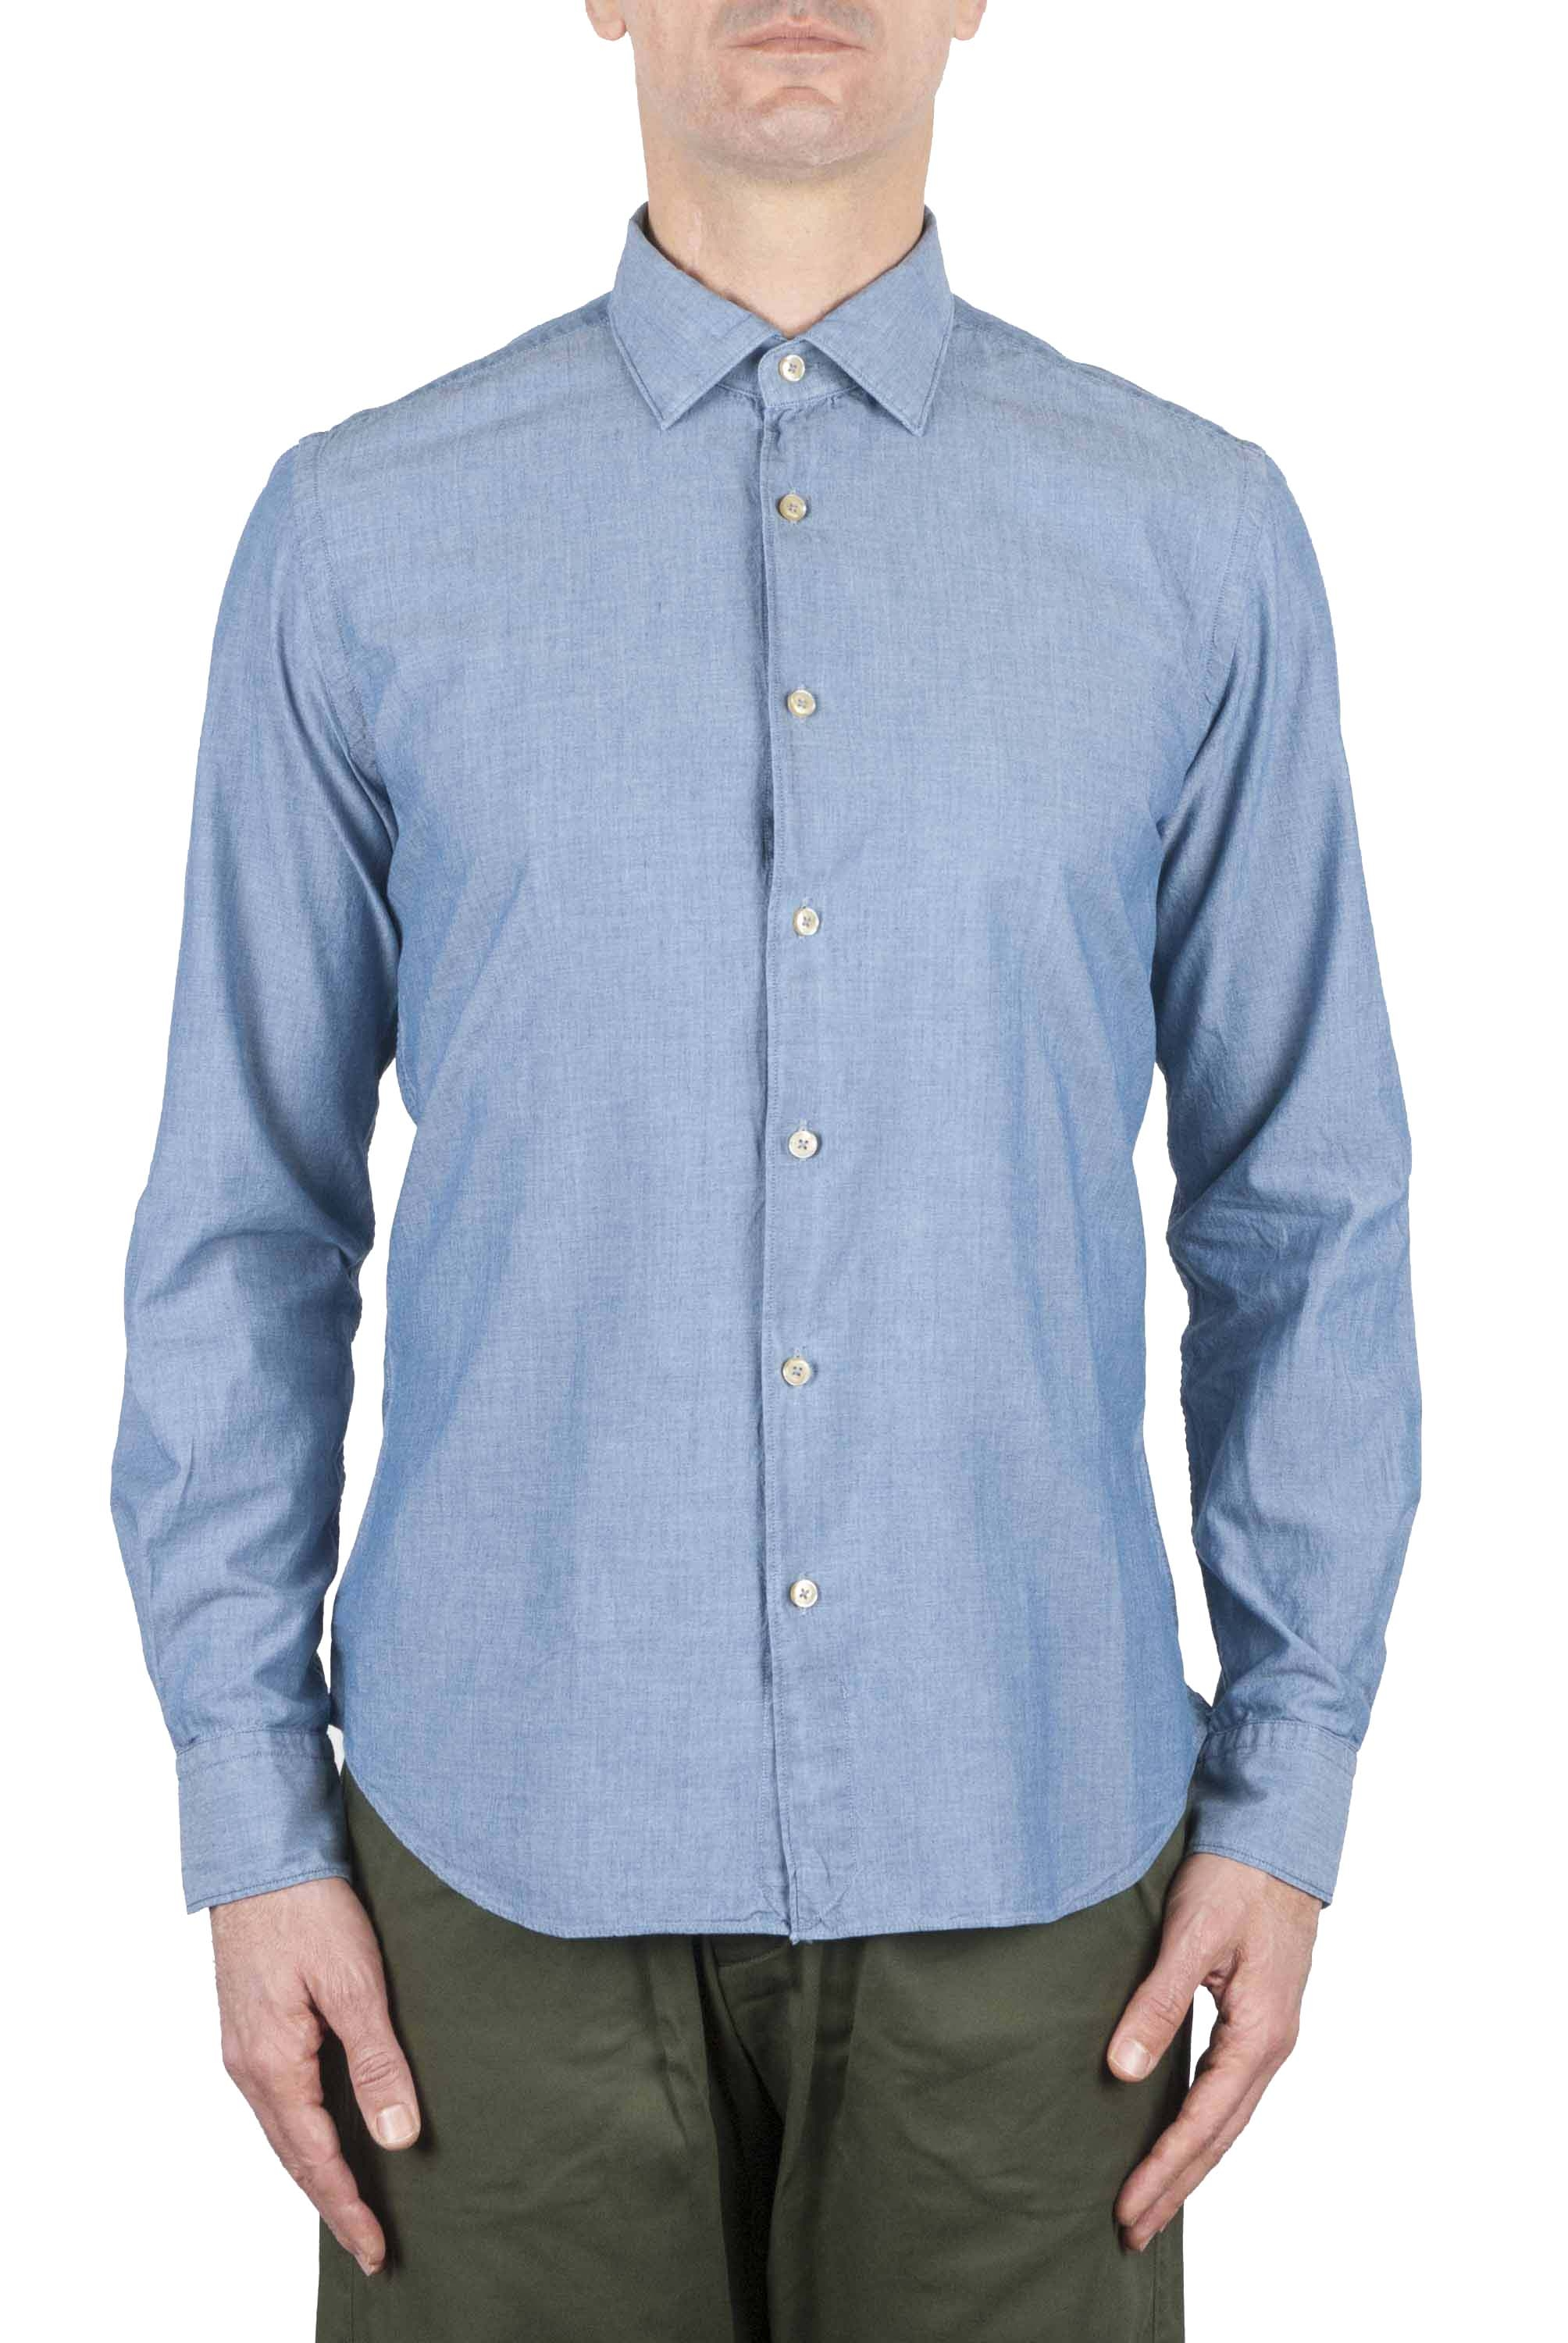 SBU 01063 Camicia slim fit in denim 01